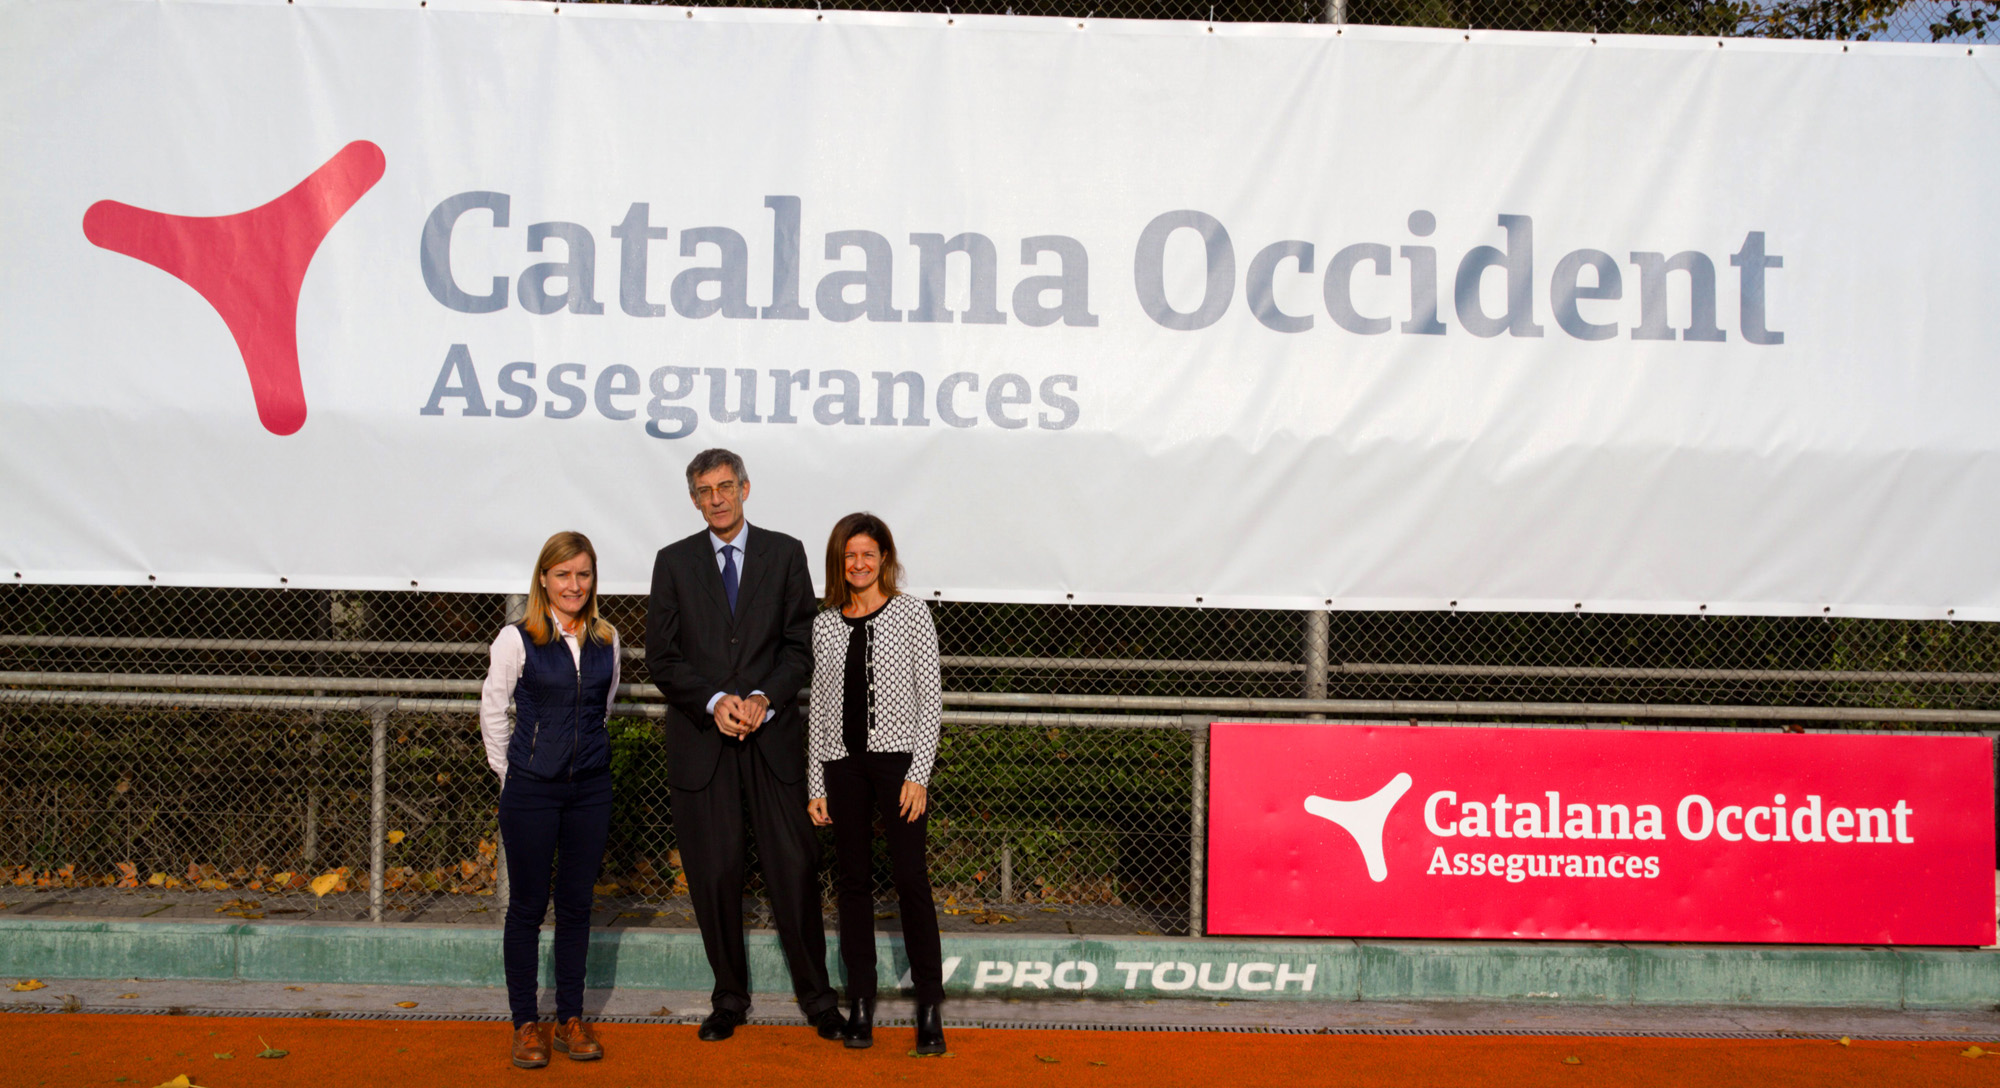 Foto Catalana Occident 1_web